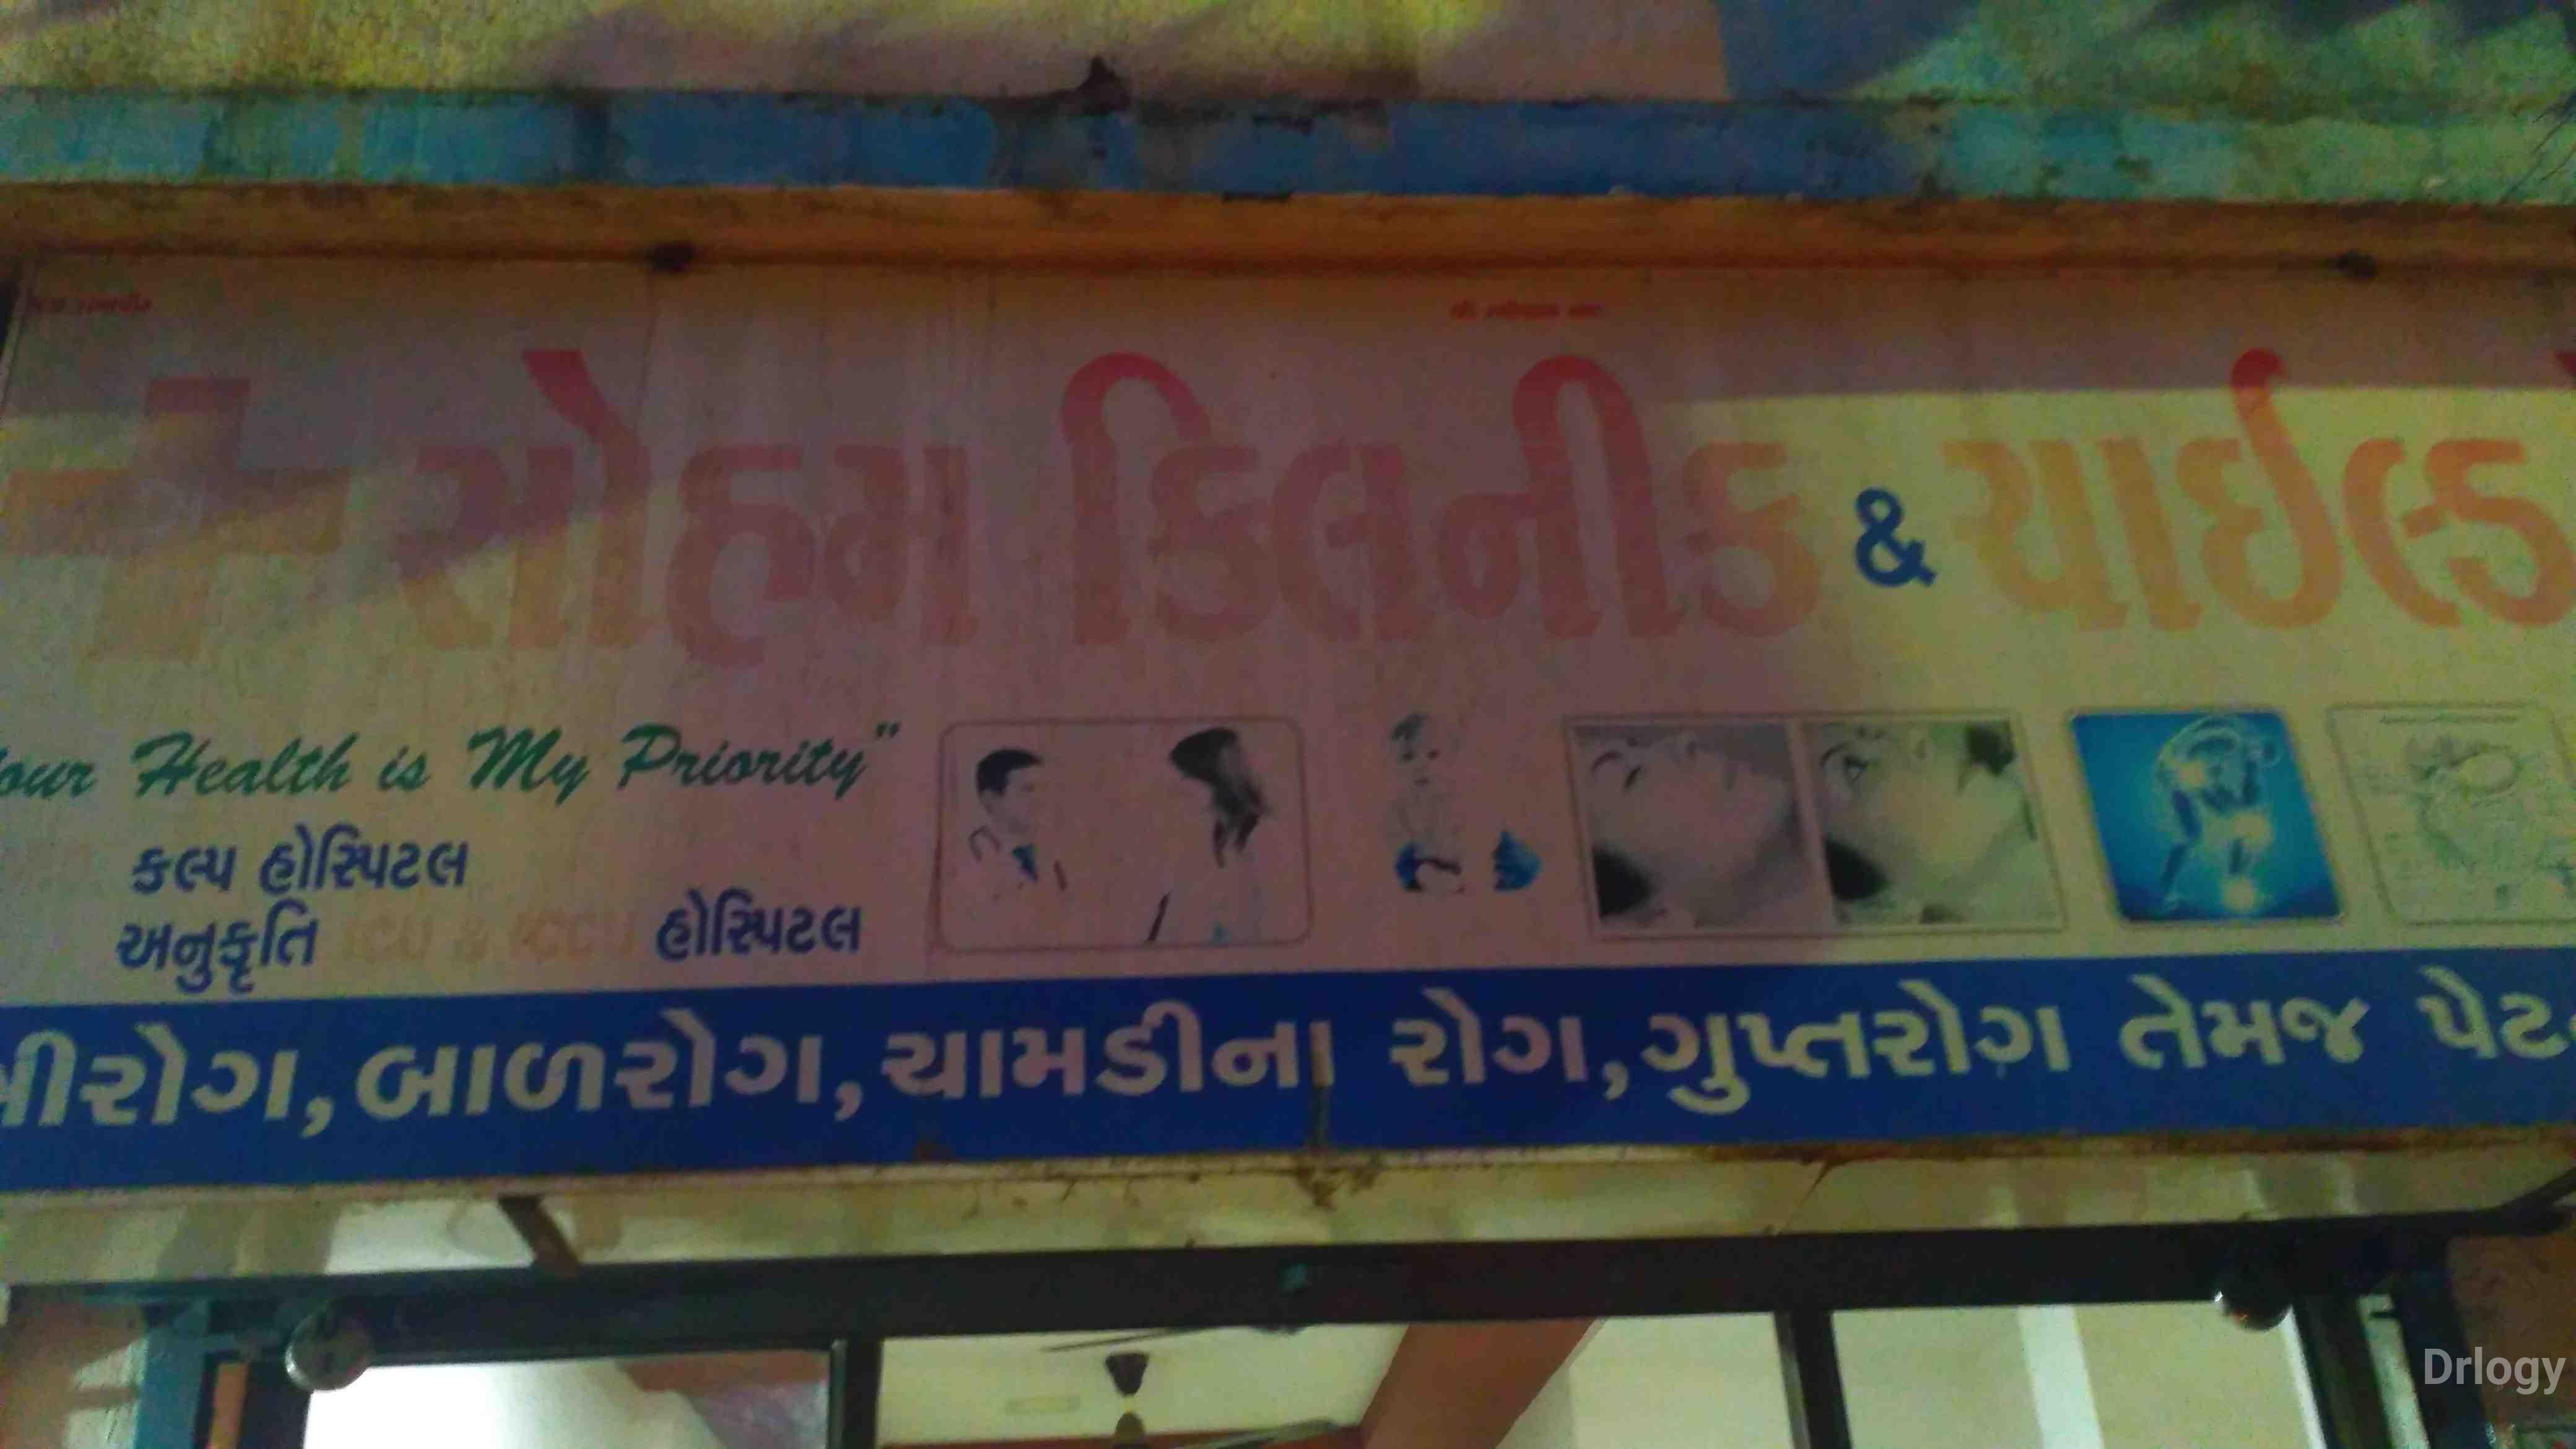 Soham clinic and child care in Surat